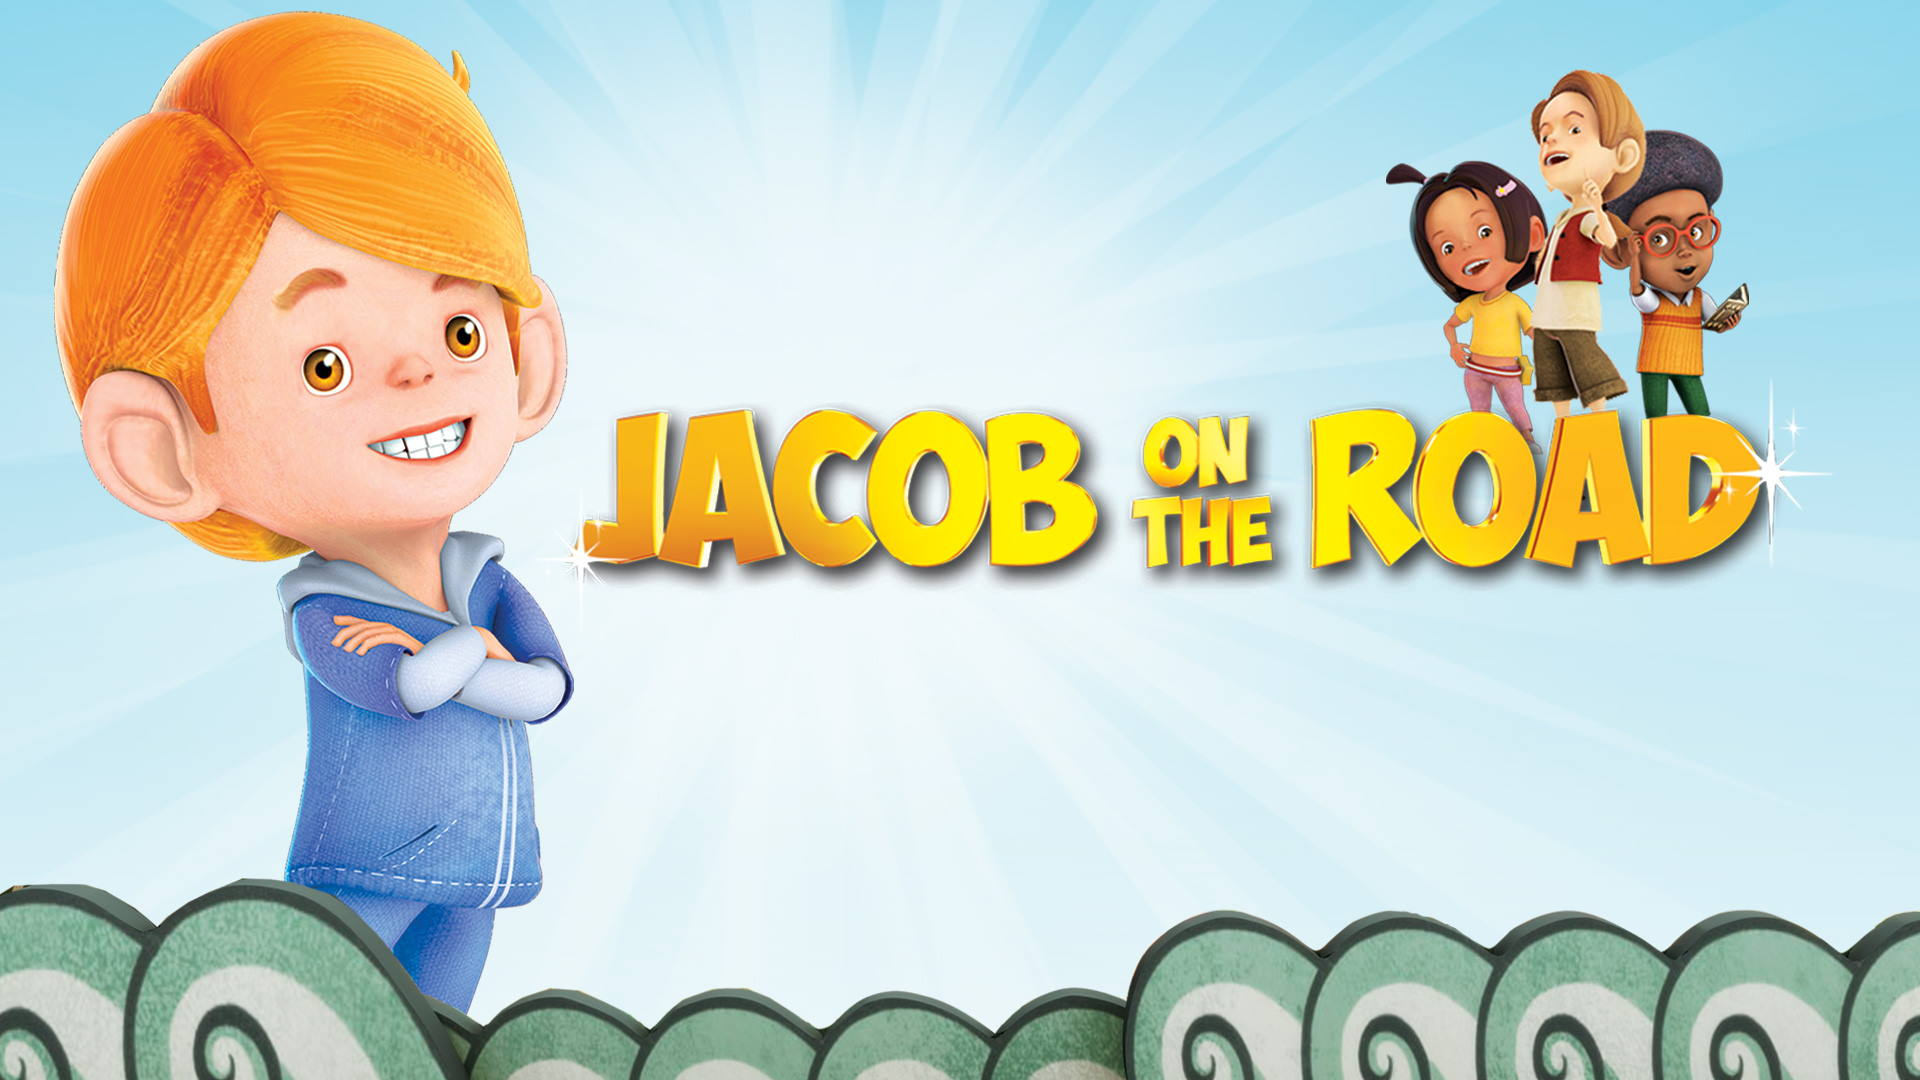 Jacob on the Road